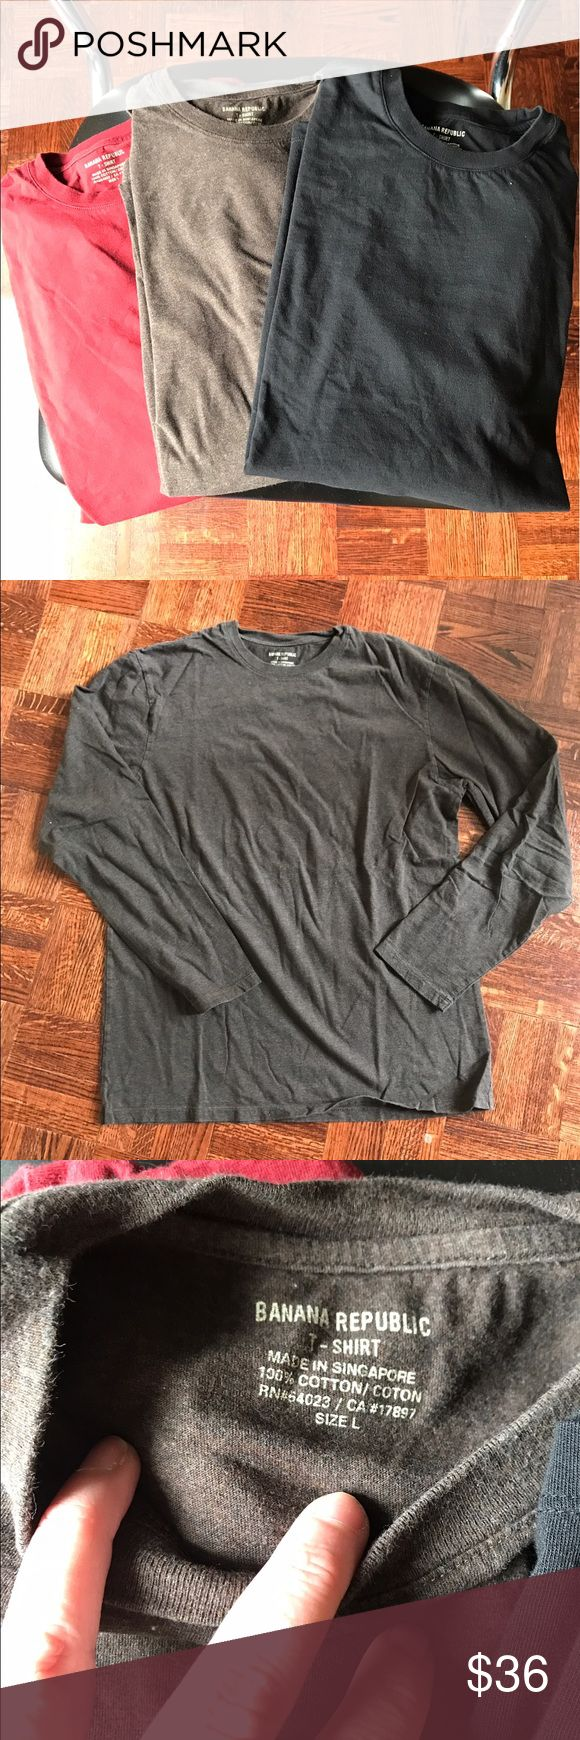 BANANA REPUBLIC 3 tshirt bundle EUC Banana Republic t-shirts (3) in red, heathered beige, washed black short sleeved and in excellent condition. Have only been washed never worn. Size L all purchased together. Sorry no trades🛍🛒bundle for deeper discounts. 💵Reasonable offers only please💸. 🆓Gift🎁 with purchase.📦Ships within 48hrs ⏱Ask questions ⁉️ Banana Republic Shirts